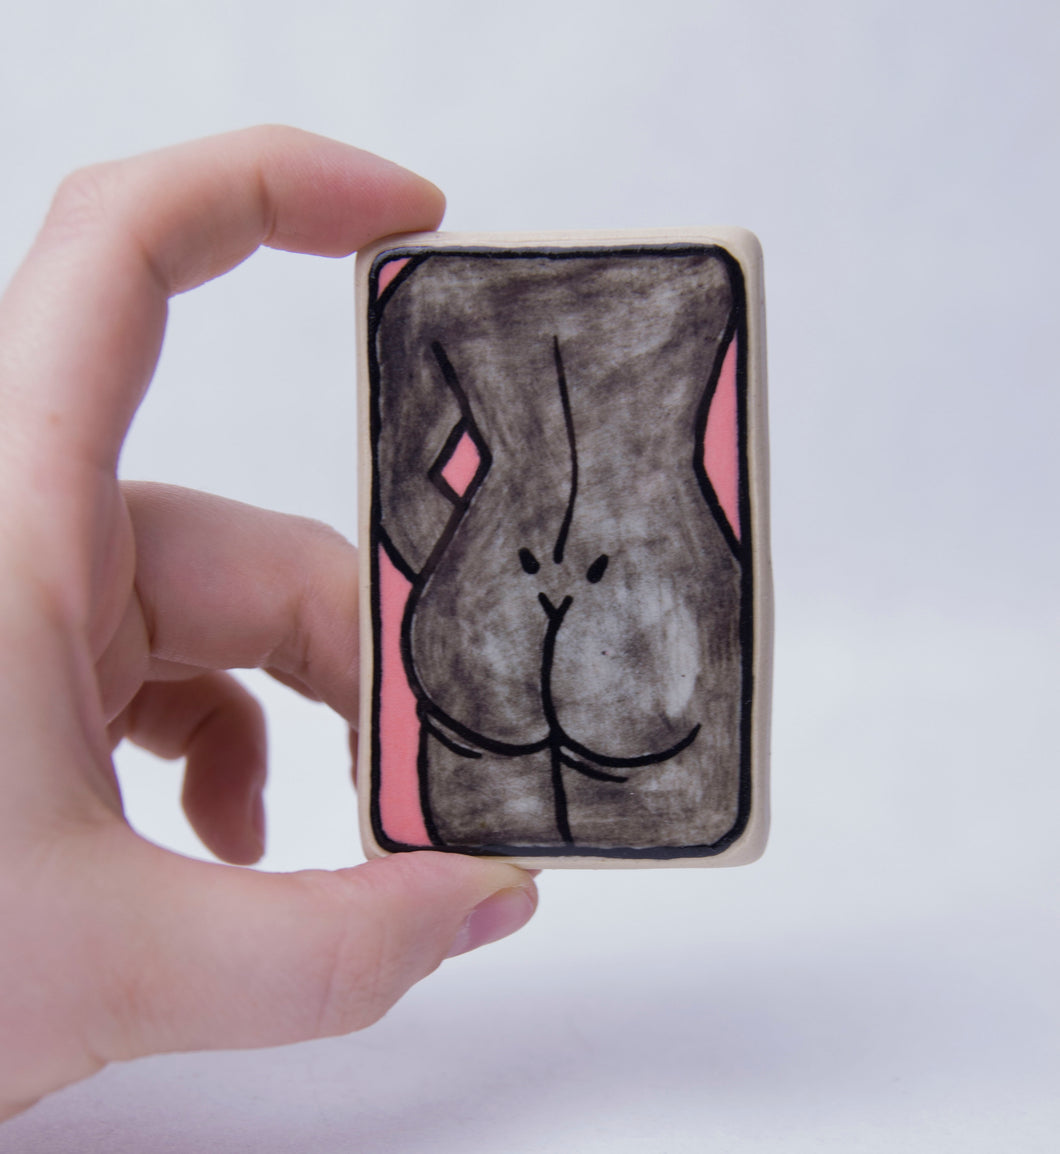 Sketchy Booty Ceramic Magnet